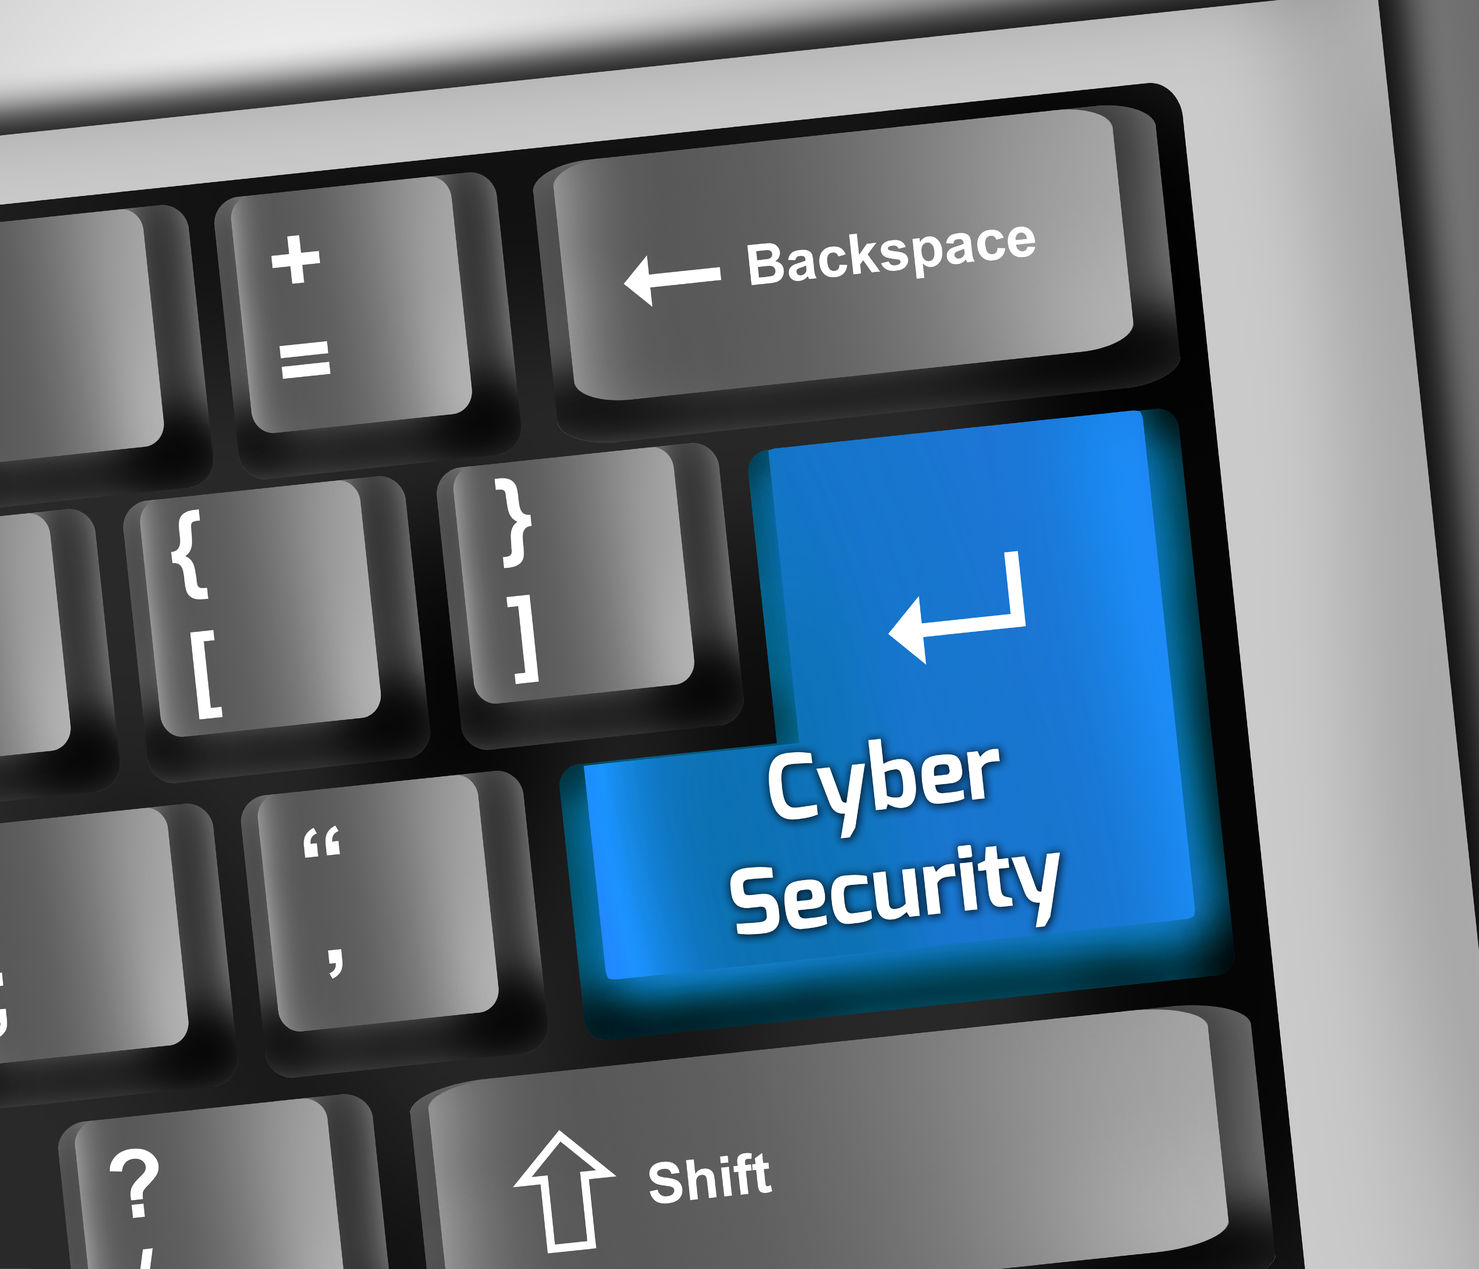 Your cybersecurity is as strong as your weakest link